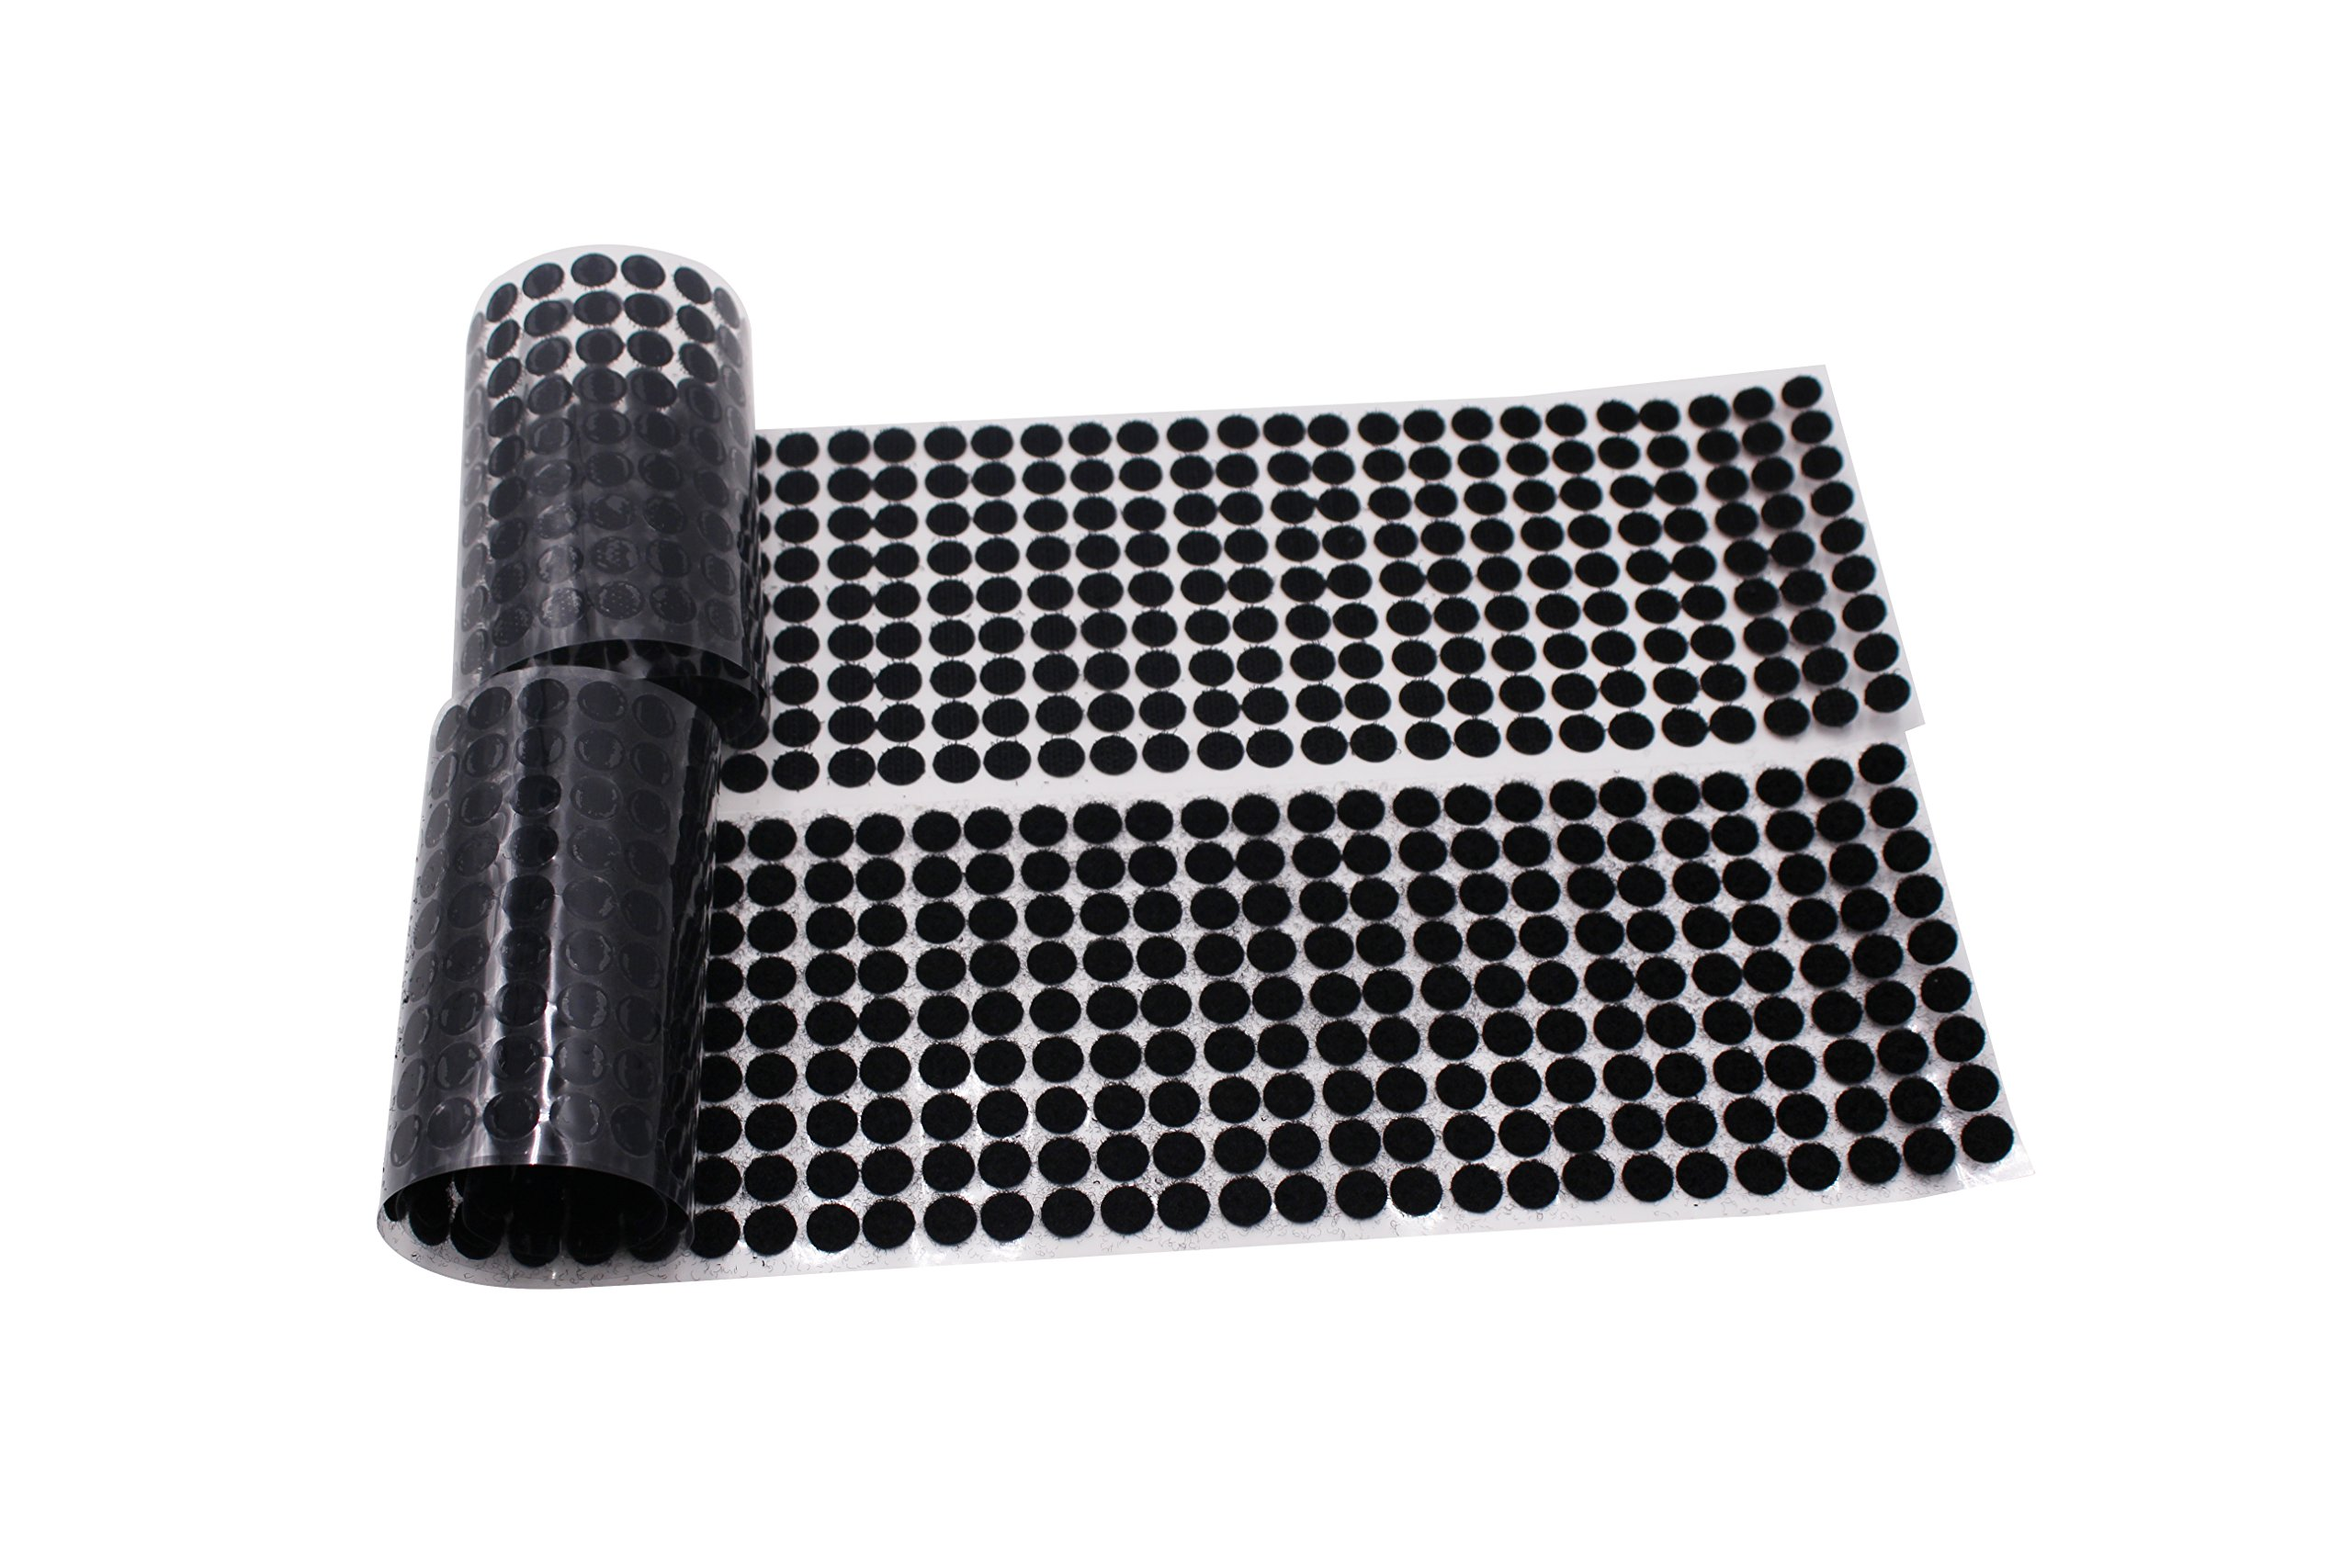 LAOZHOU 500 Pairs Sticky Back Coins Hook & Loop Self Adhesive Dots Tapes (10MM Black)